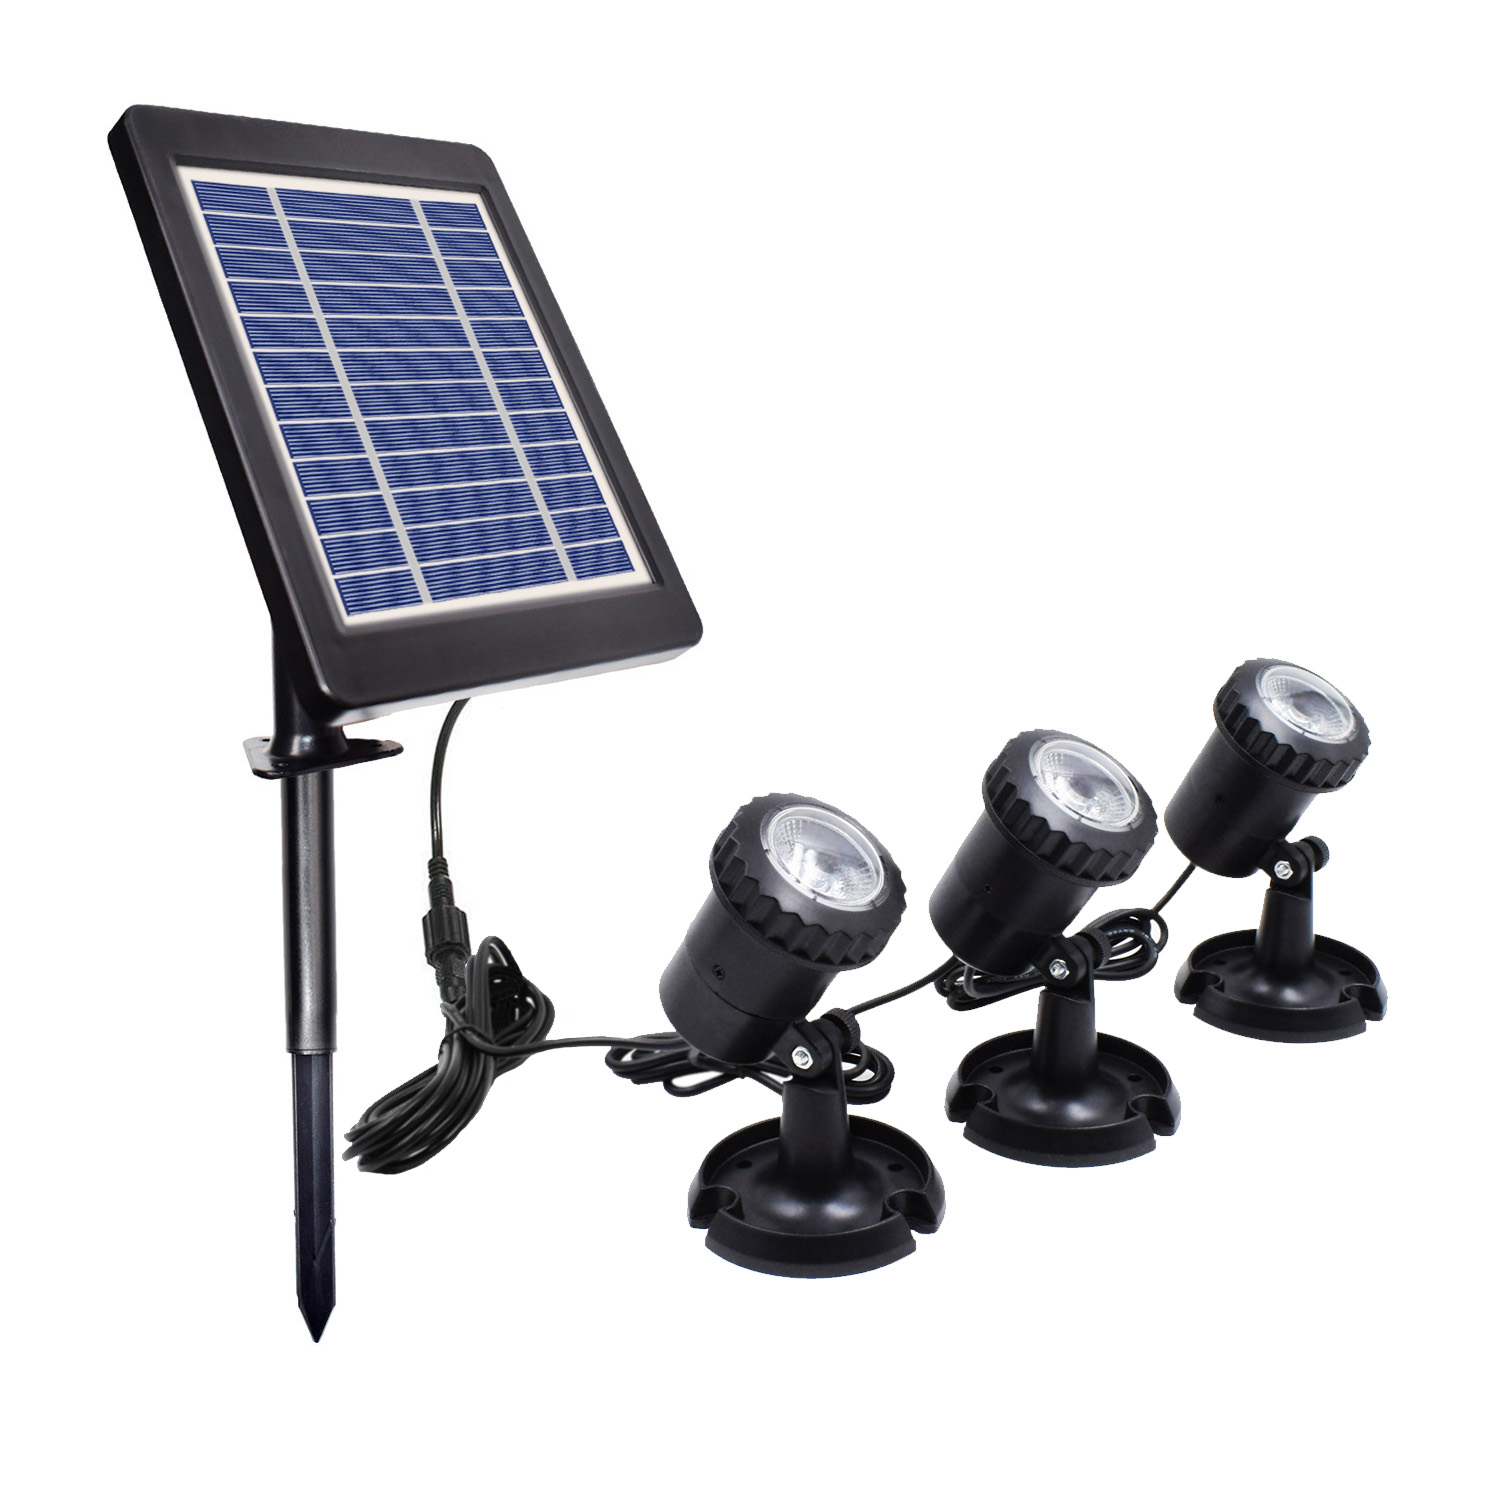 3-in-1 LED Light Solar Powered Landscape Spotlight Projection for Garden Pool Lawn Warm White_3 in 1